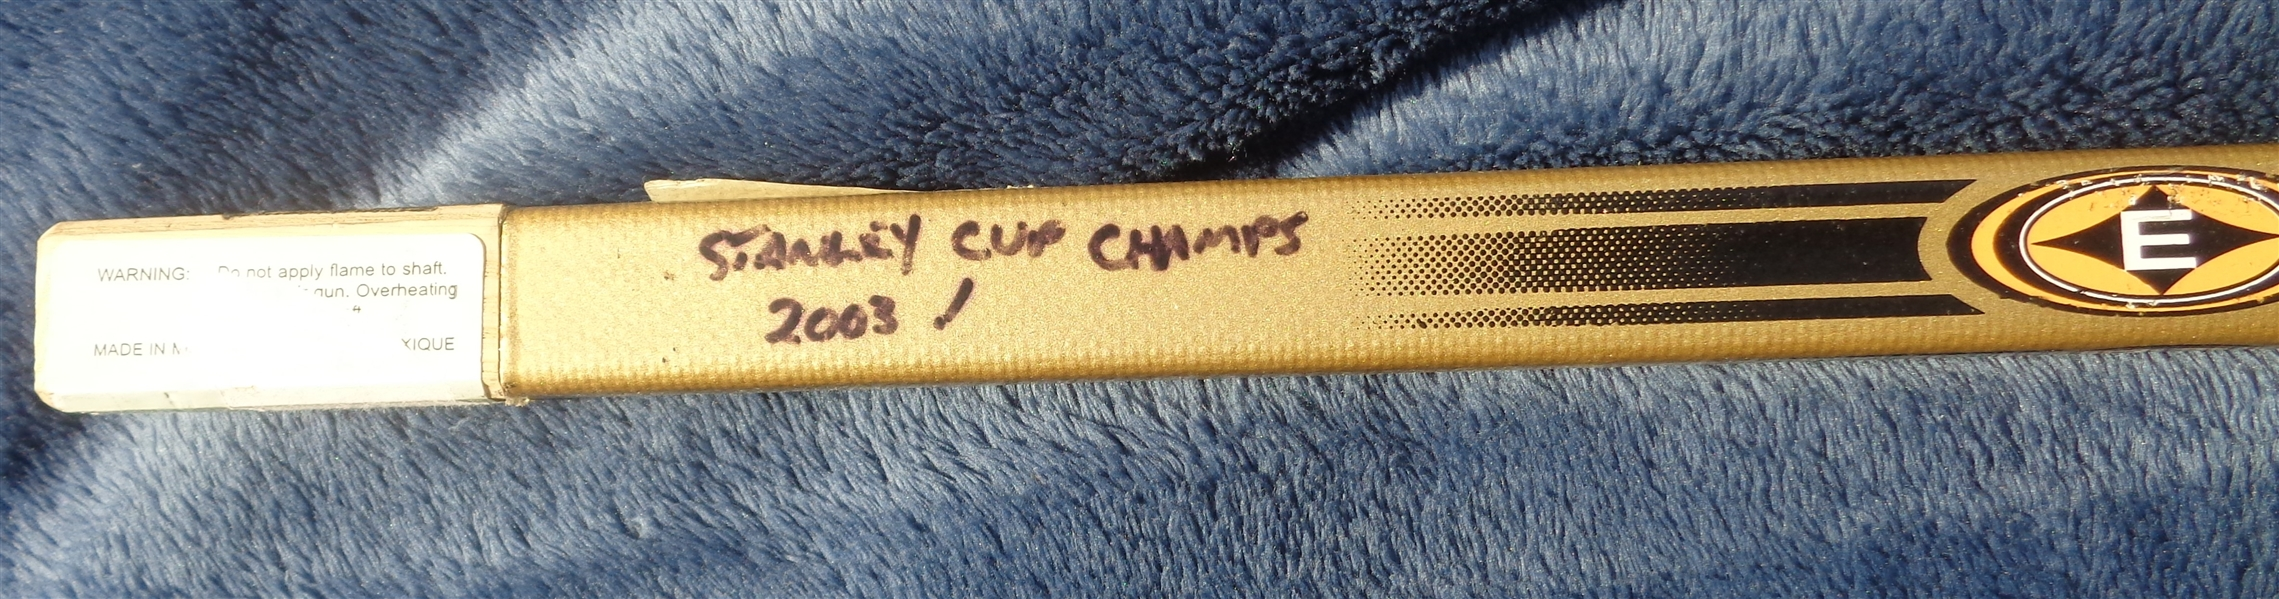 2003 Stanley Cup Champions NJ Devils Team Signed Official Easton Hockey Stick